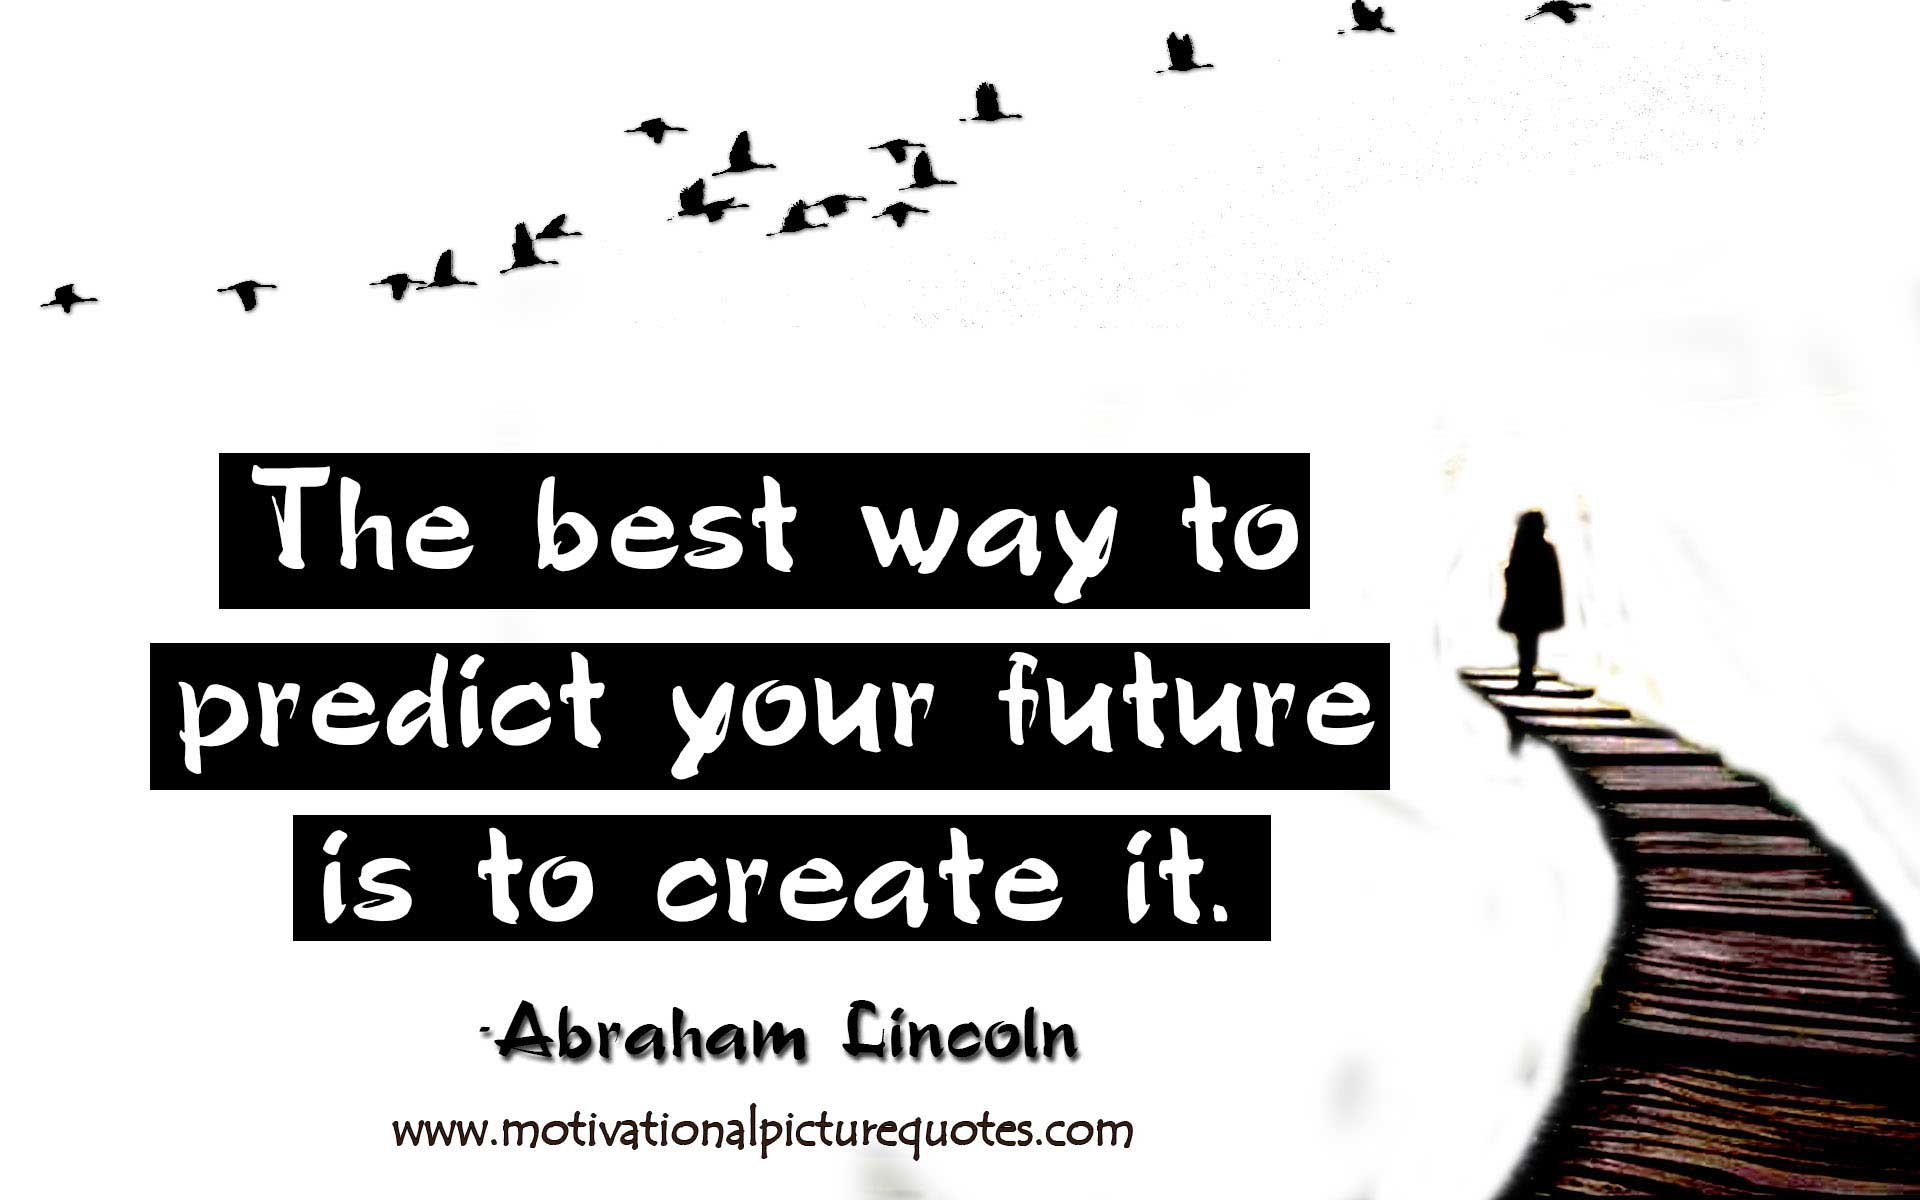 Motivational Quotes For Life 15 Inspirational Past Present Future Quotes & Images  Insbright